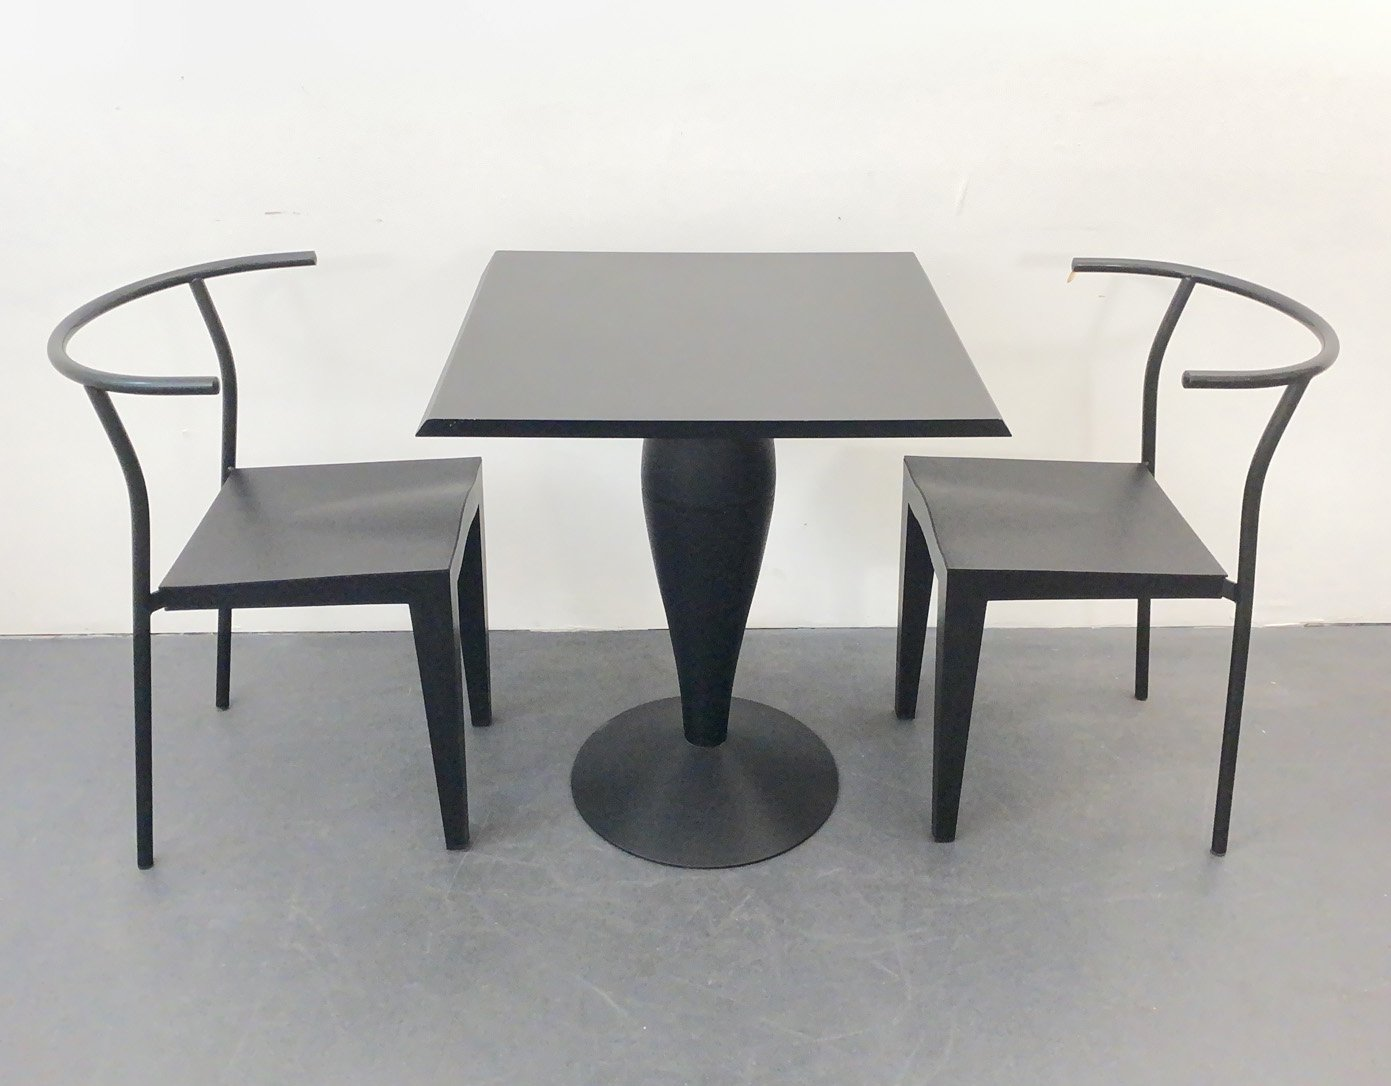 Living Room Bedroom Combo Ideas, 2 Chairs Table By Philippe Starck For Kartell Italy 1980s 136613